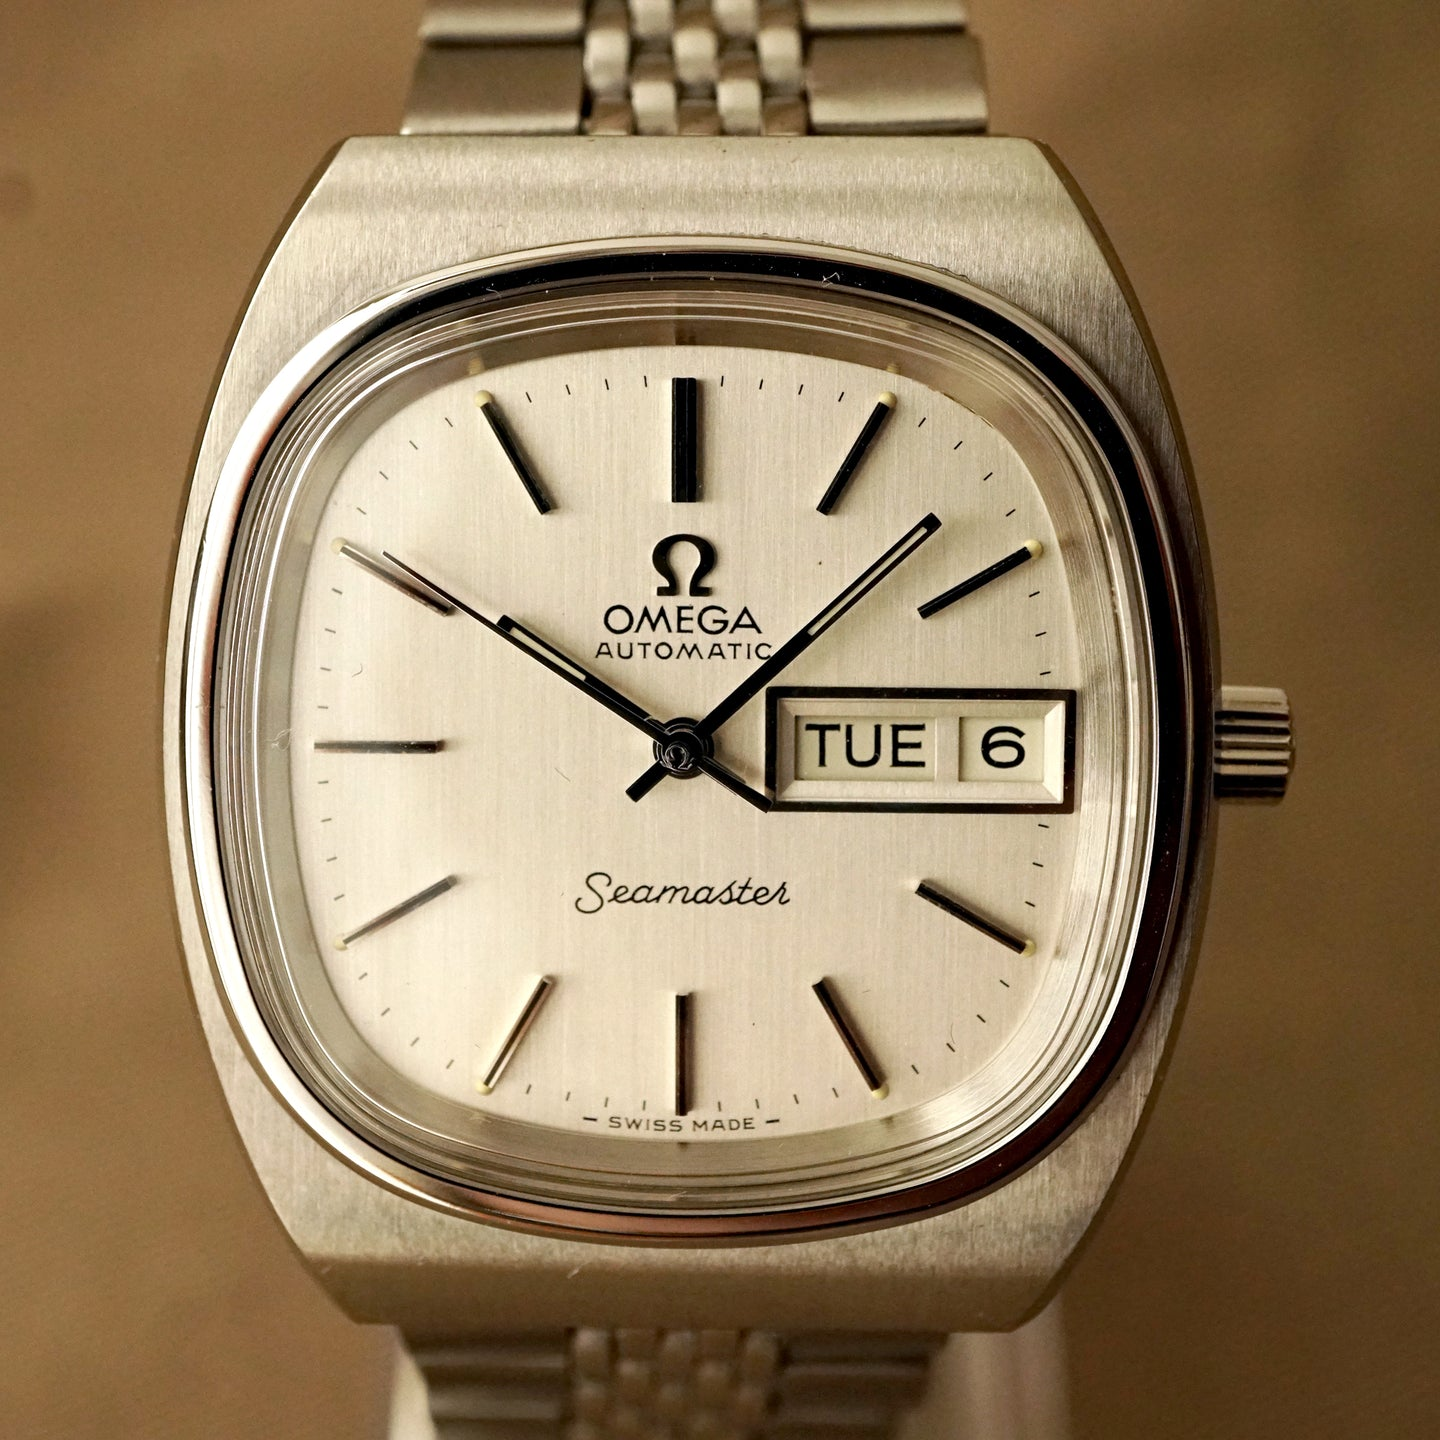 1979 OMEGA SEAMASTER 166.0211.1 TV AUTOMATIC COMPLETE SERVICED NOS